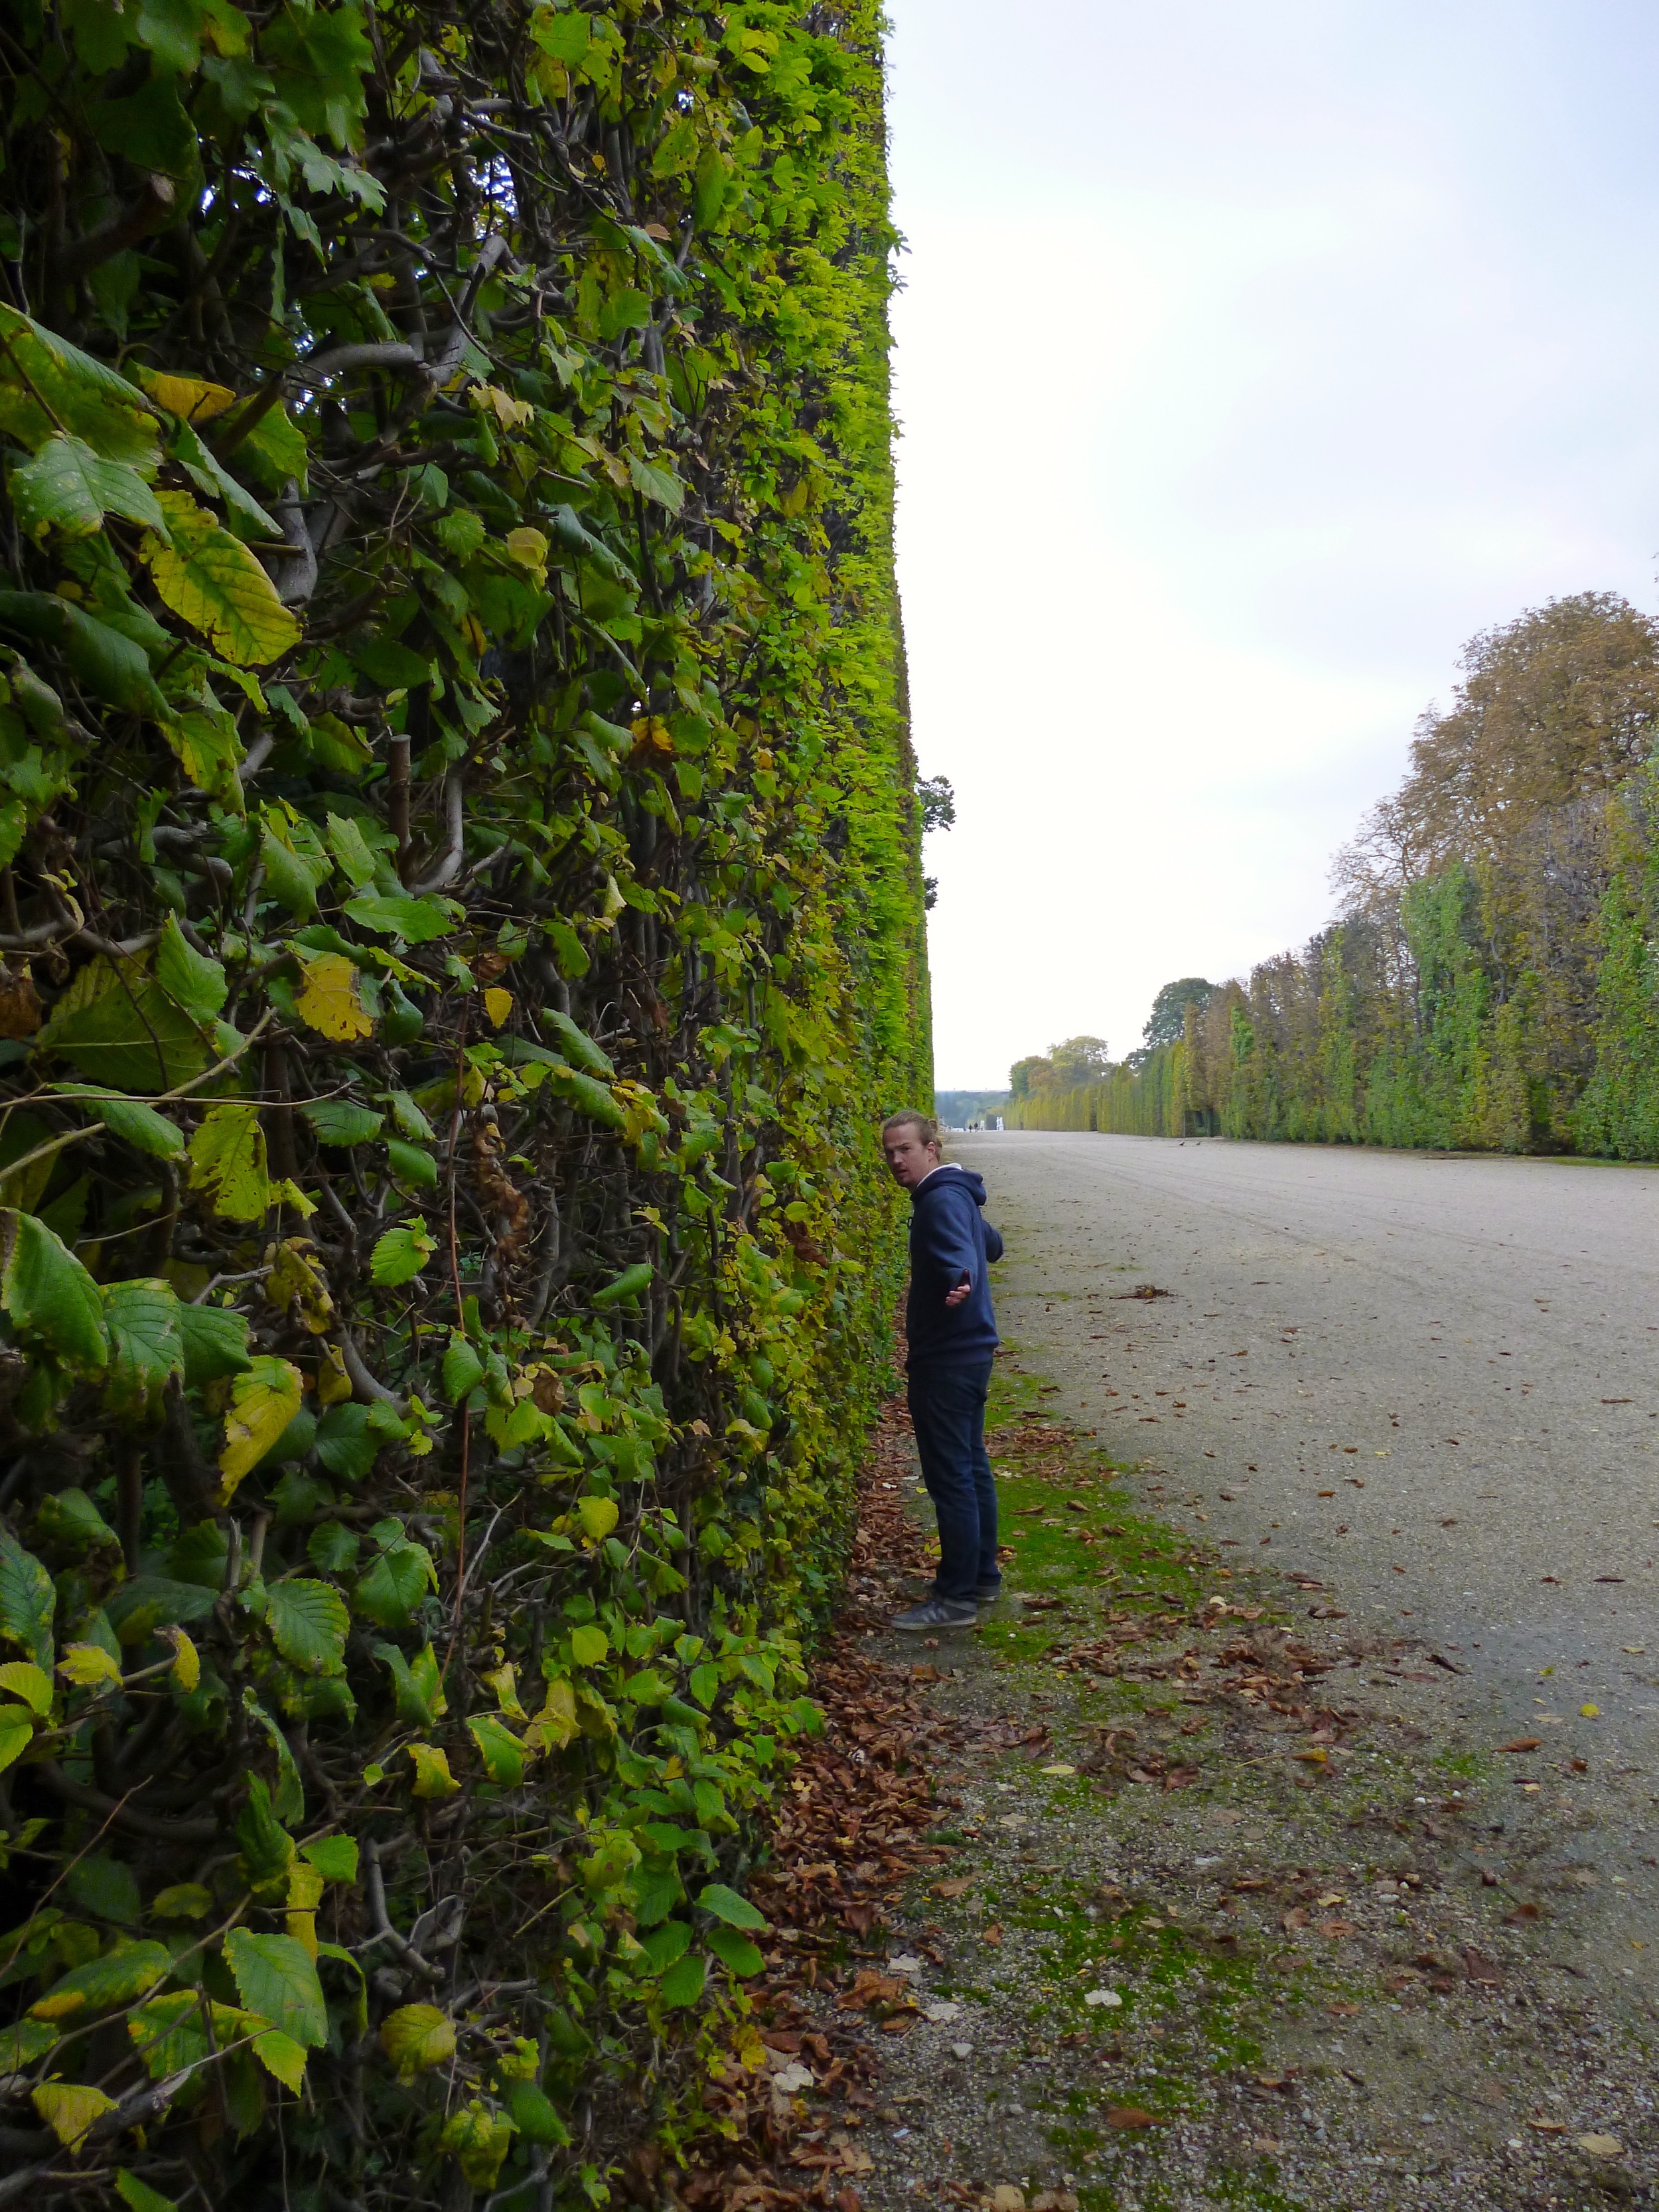 Check out how flat this hedge is. And it goes on forever. Who cuts this hedge? How long does that take? How did they do that back in the day? Aliens? Probably.